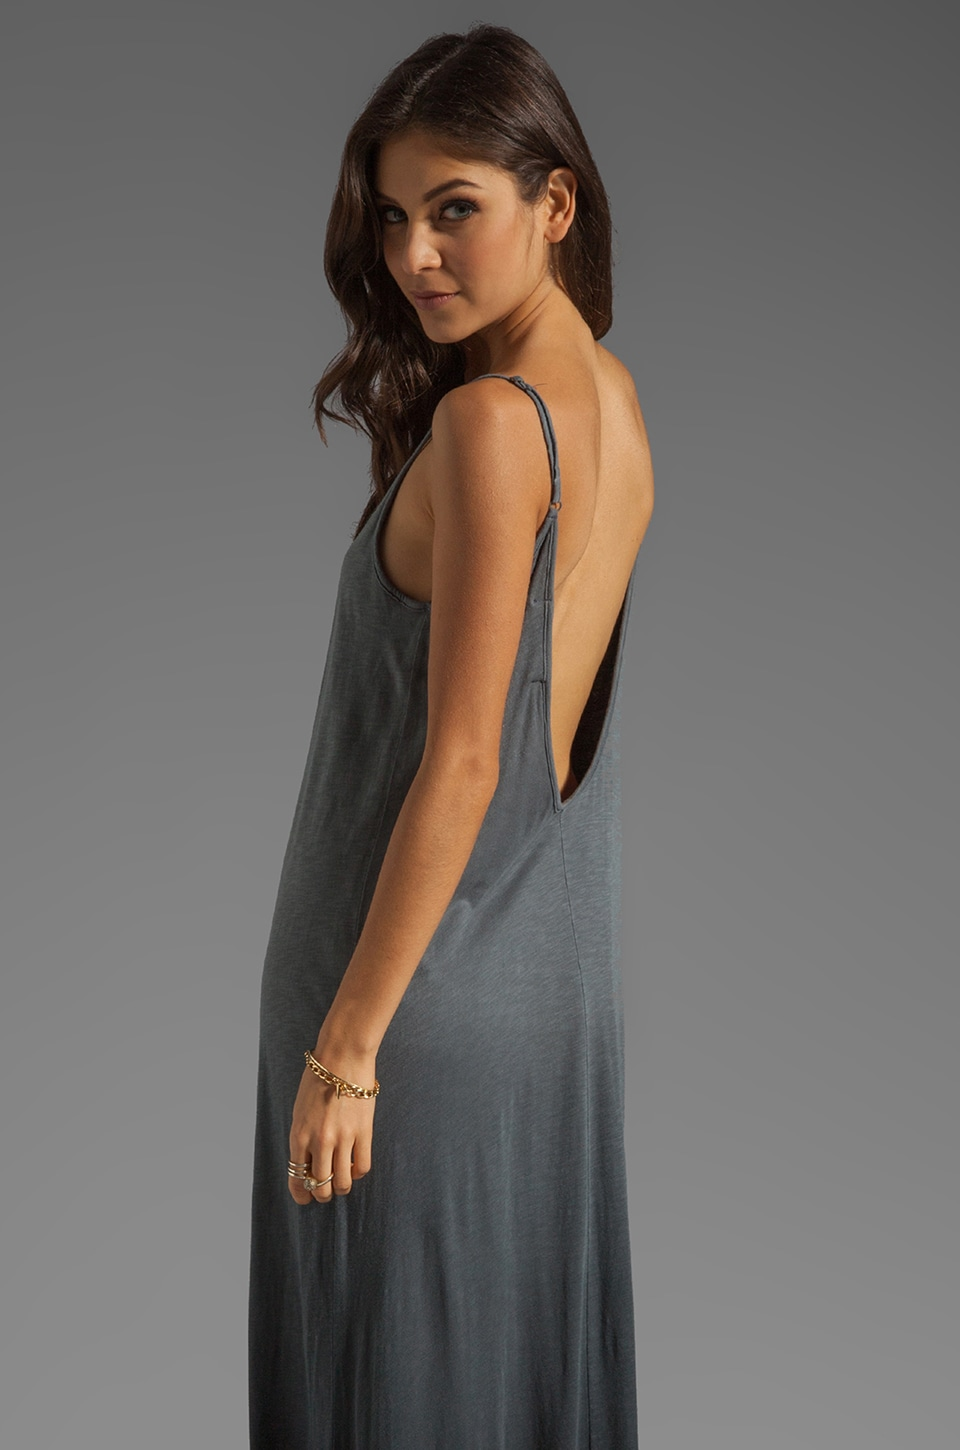 WOODLEIGH Lexi Maxi in Smoke